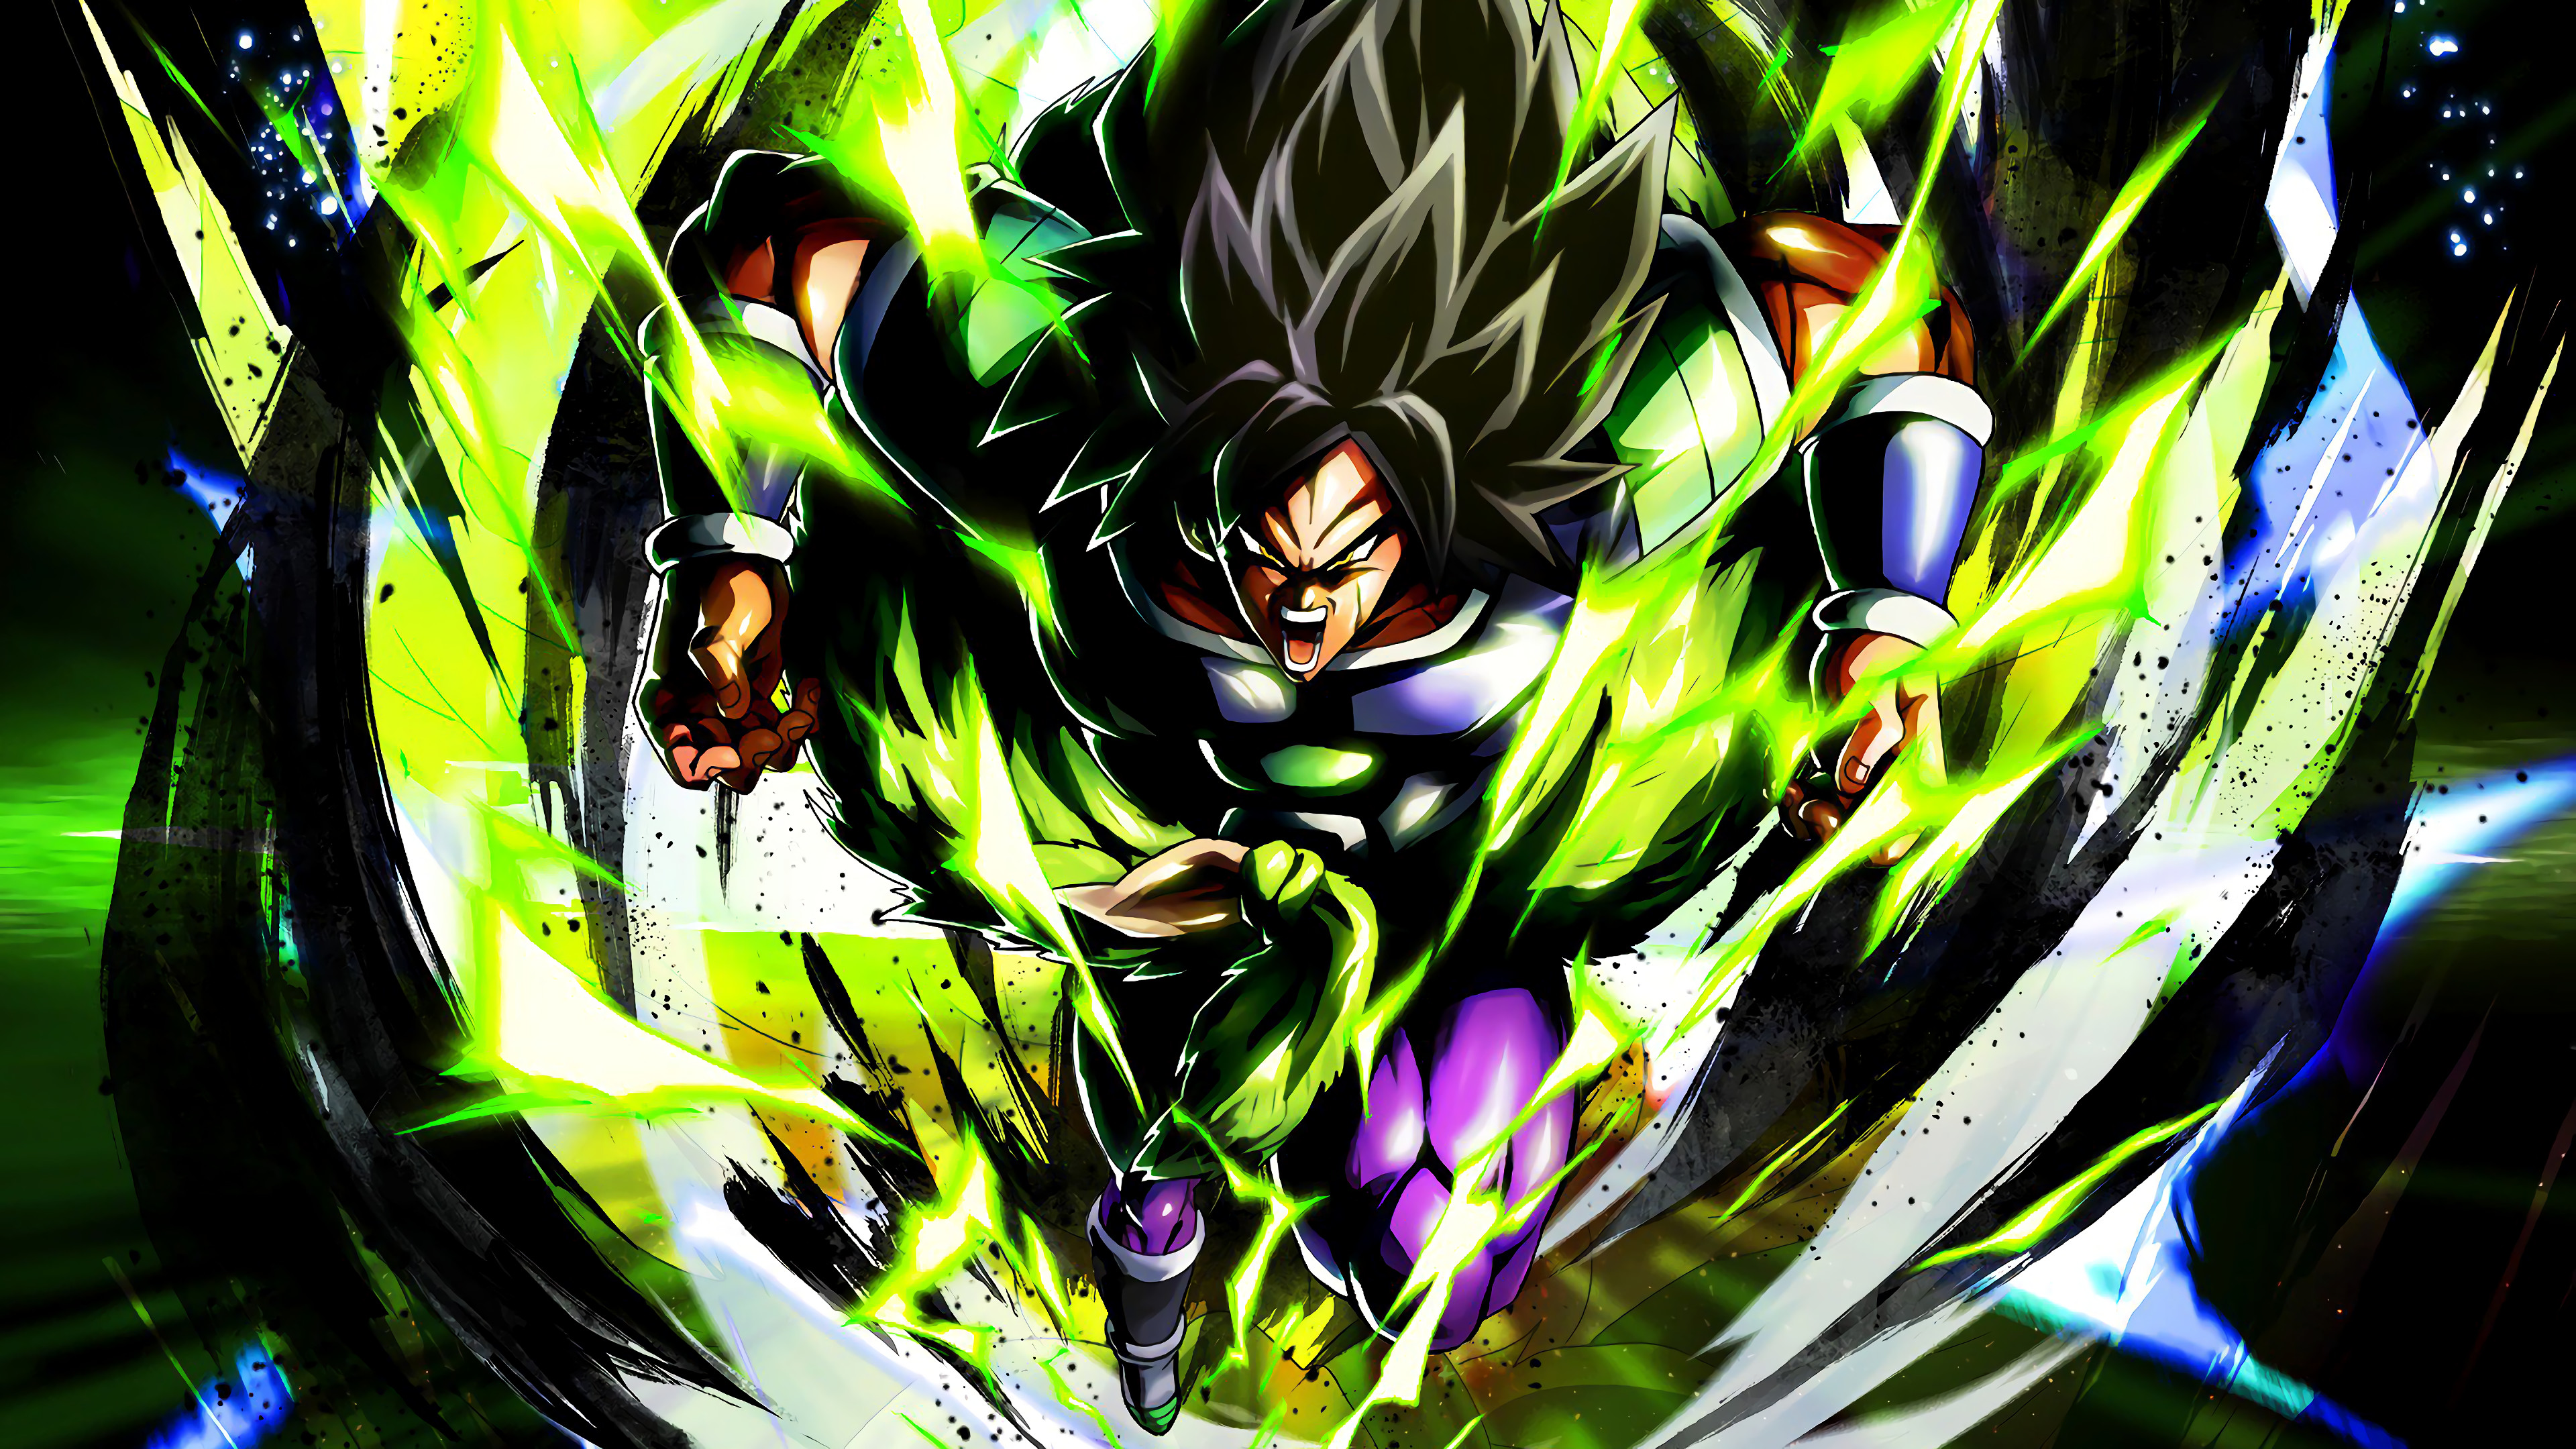 Dragon Ball Super: Broly Wallpapers, Pictures, Images